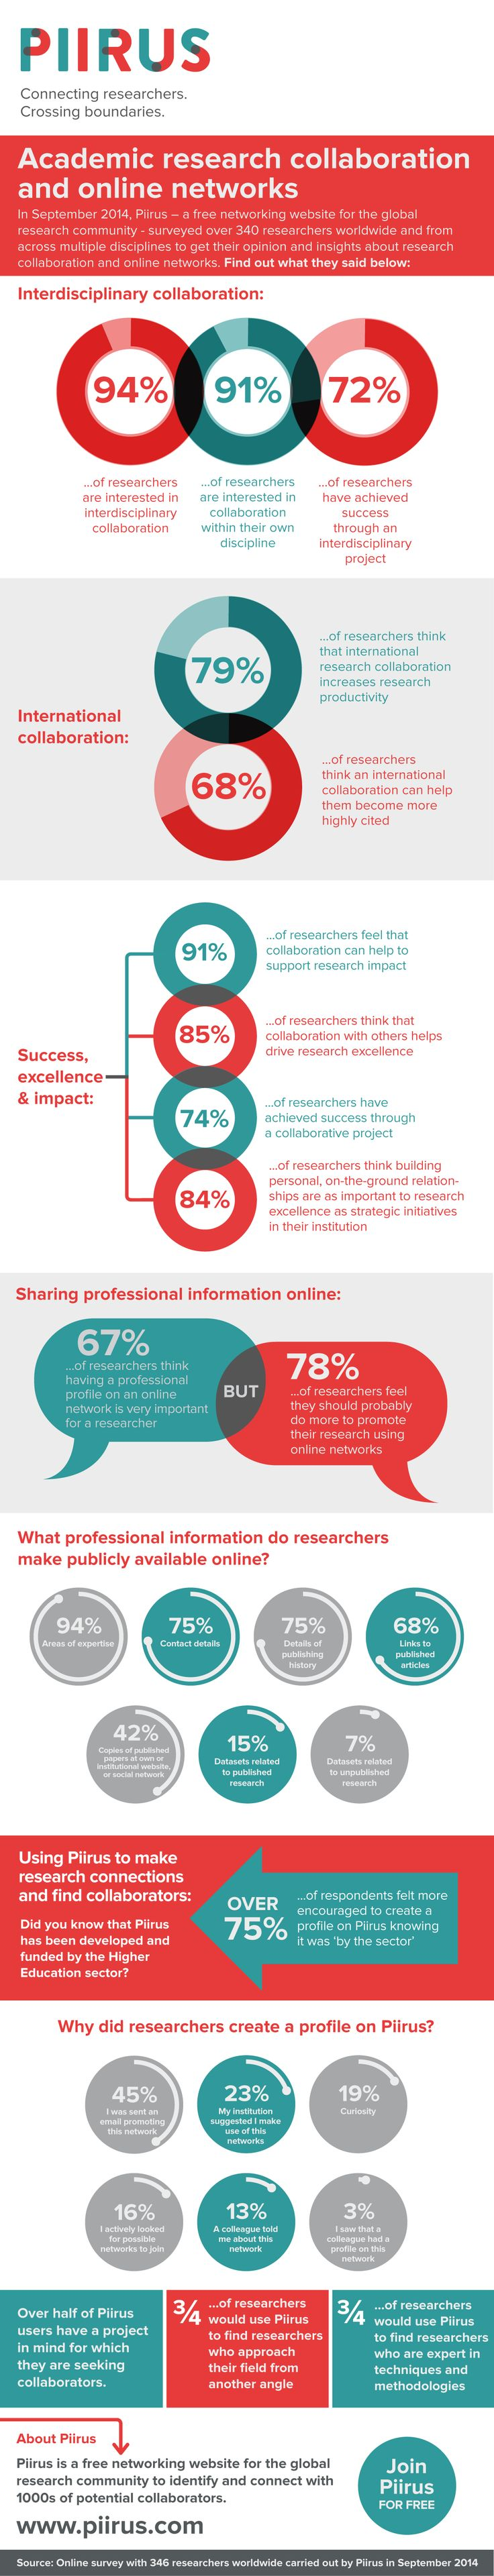 theresearchwhisperer.wordpress.com/ Article and Infographic on how researchers collaborate online